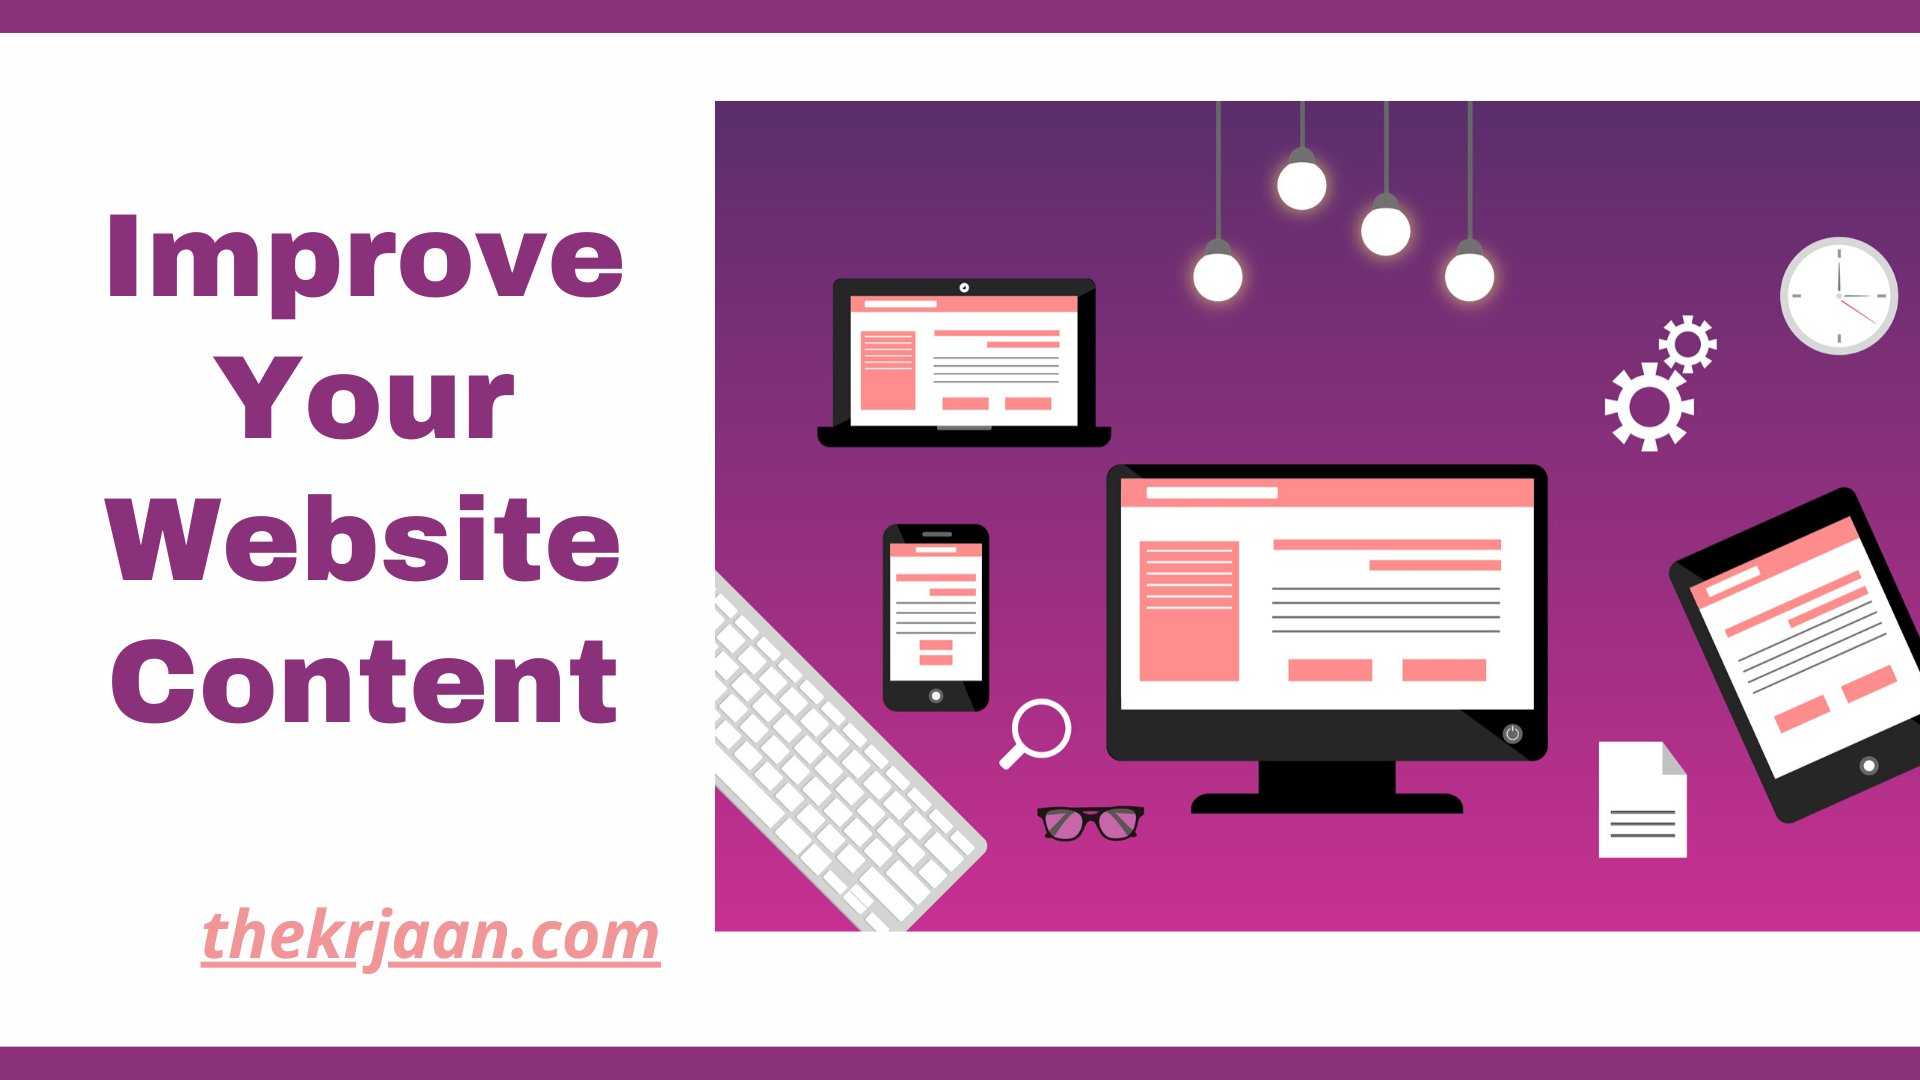 Improve Your Website Content With These Ultimate Ideas